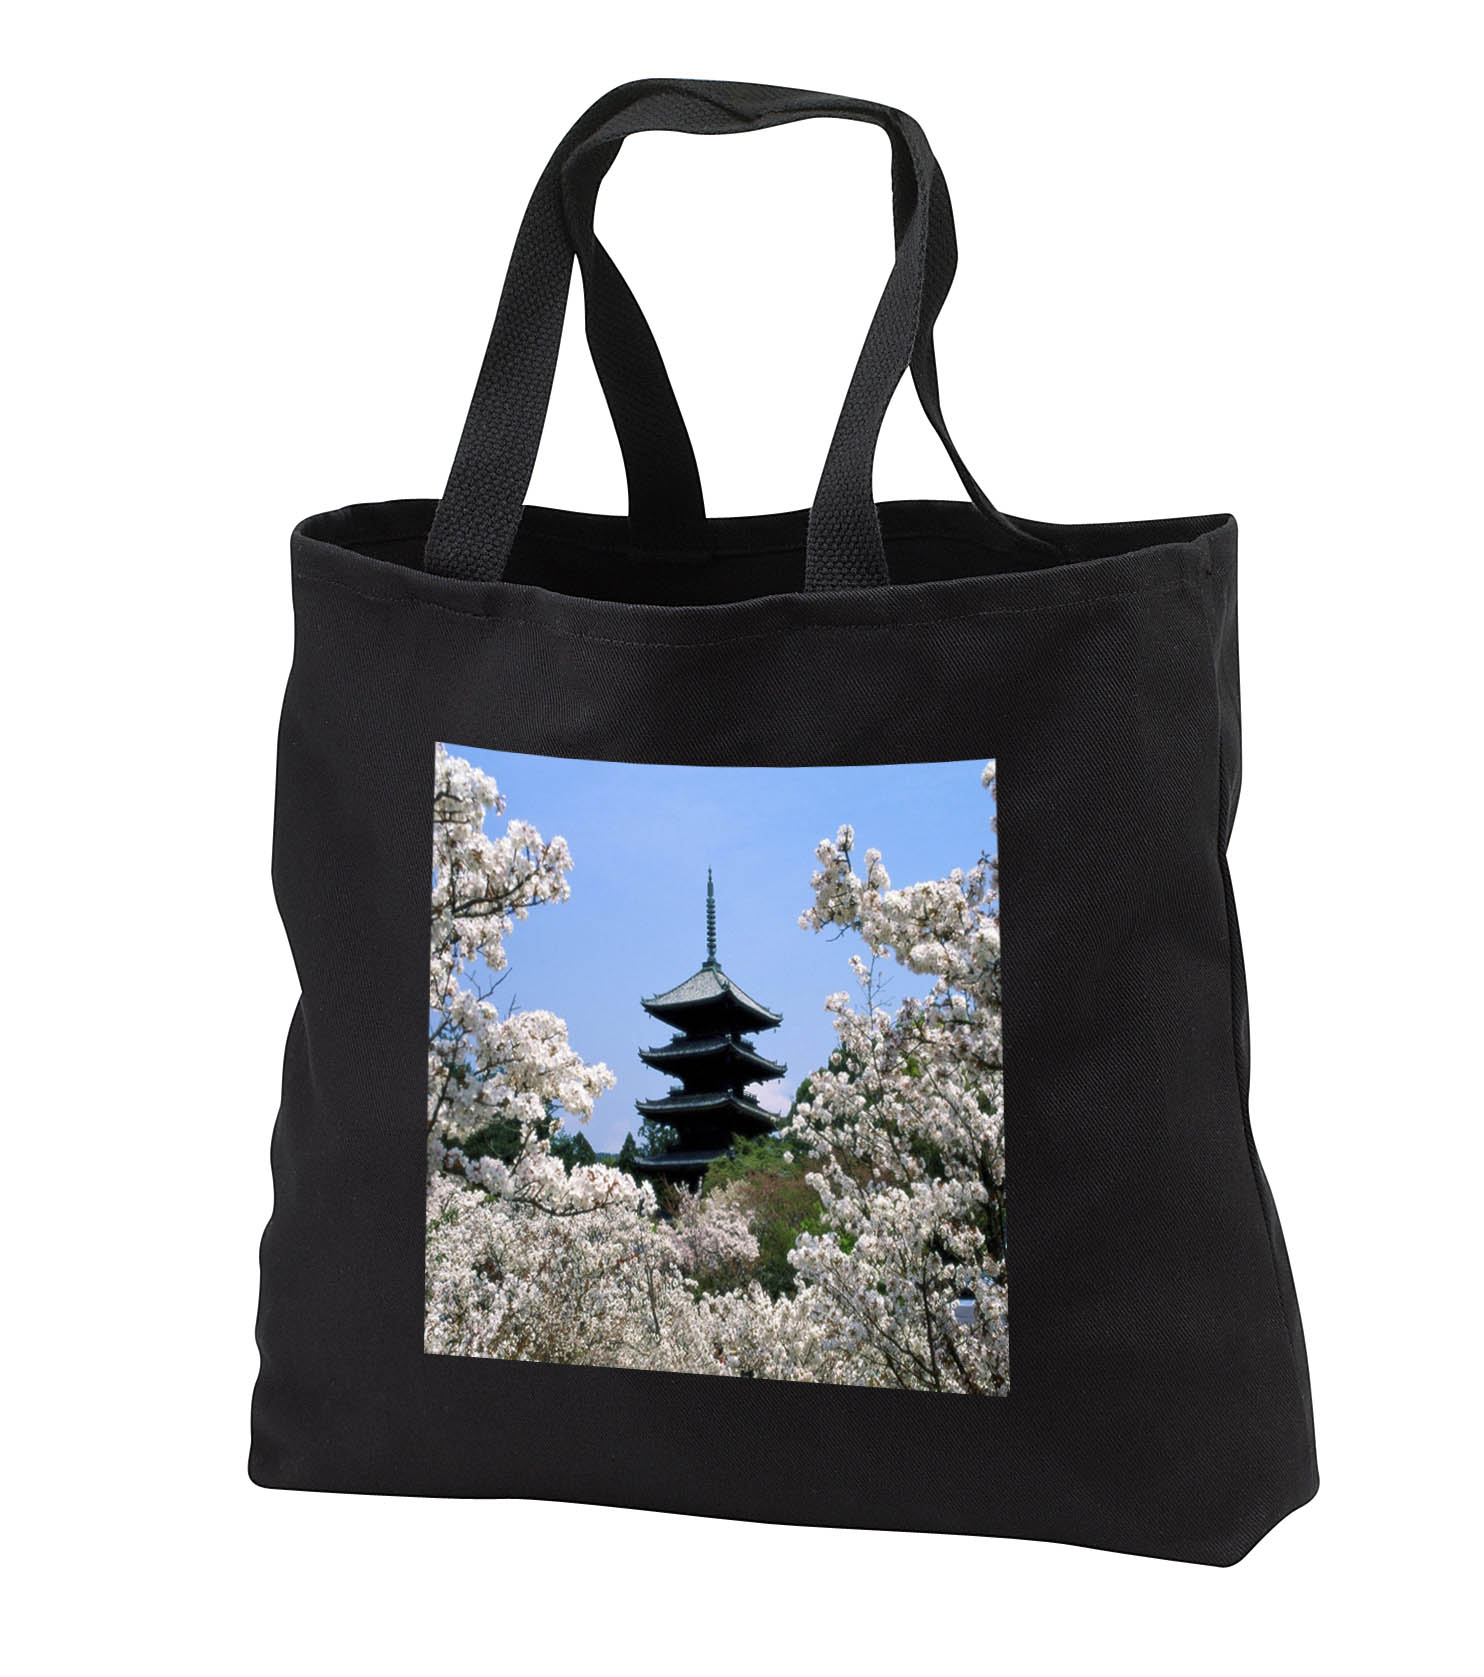 3dRose - Florene Worlds Exotic Spots - Cherry Blossoms In Japan - Tote Bags